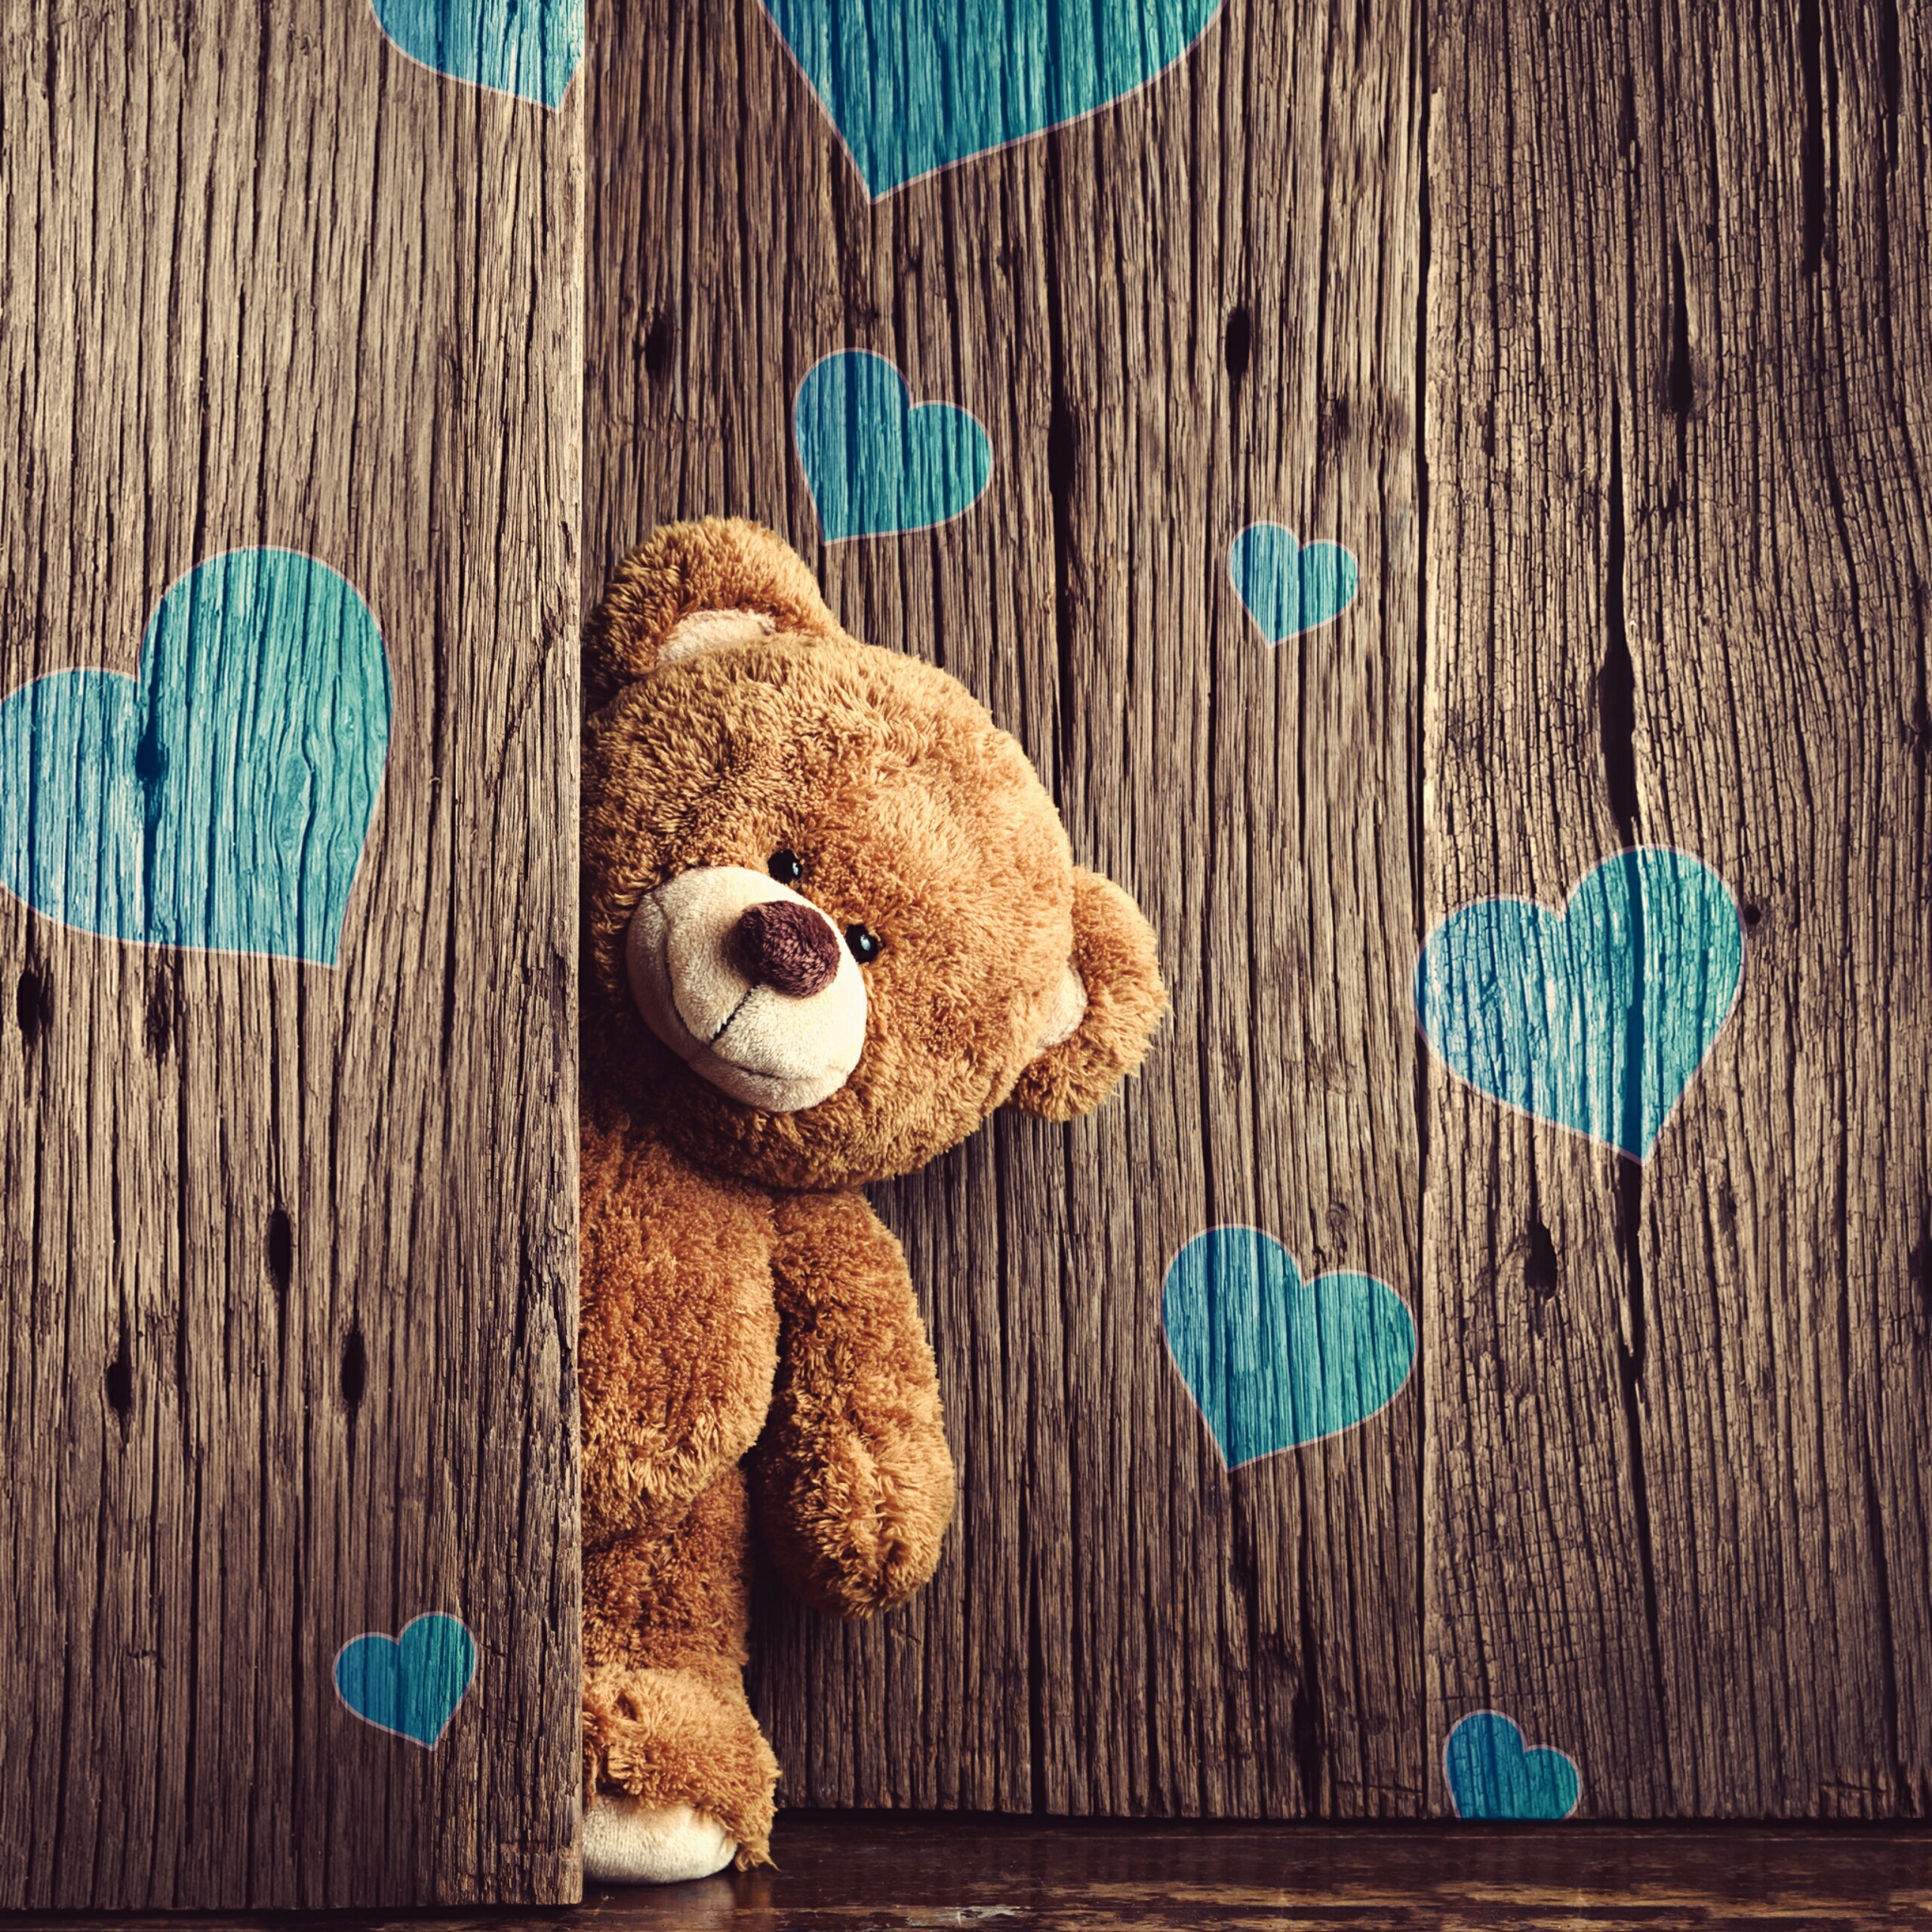 A Teddy Bear With Blue Hears On The Wall Valentines Day Events Qhd